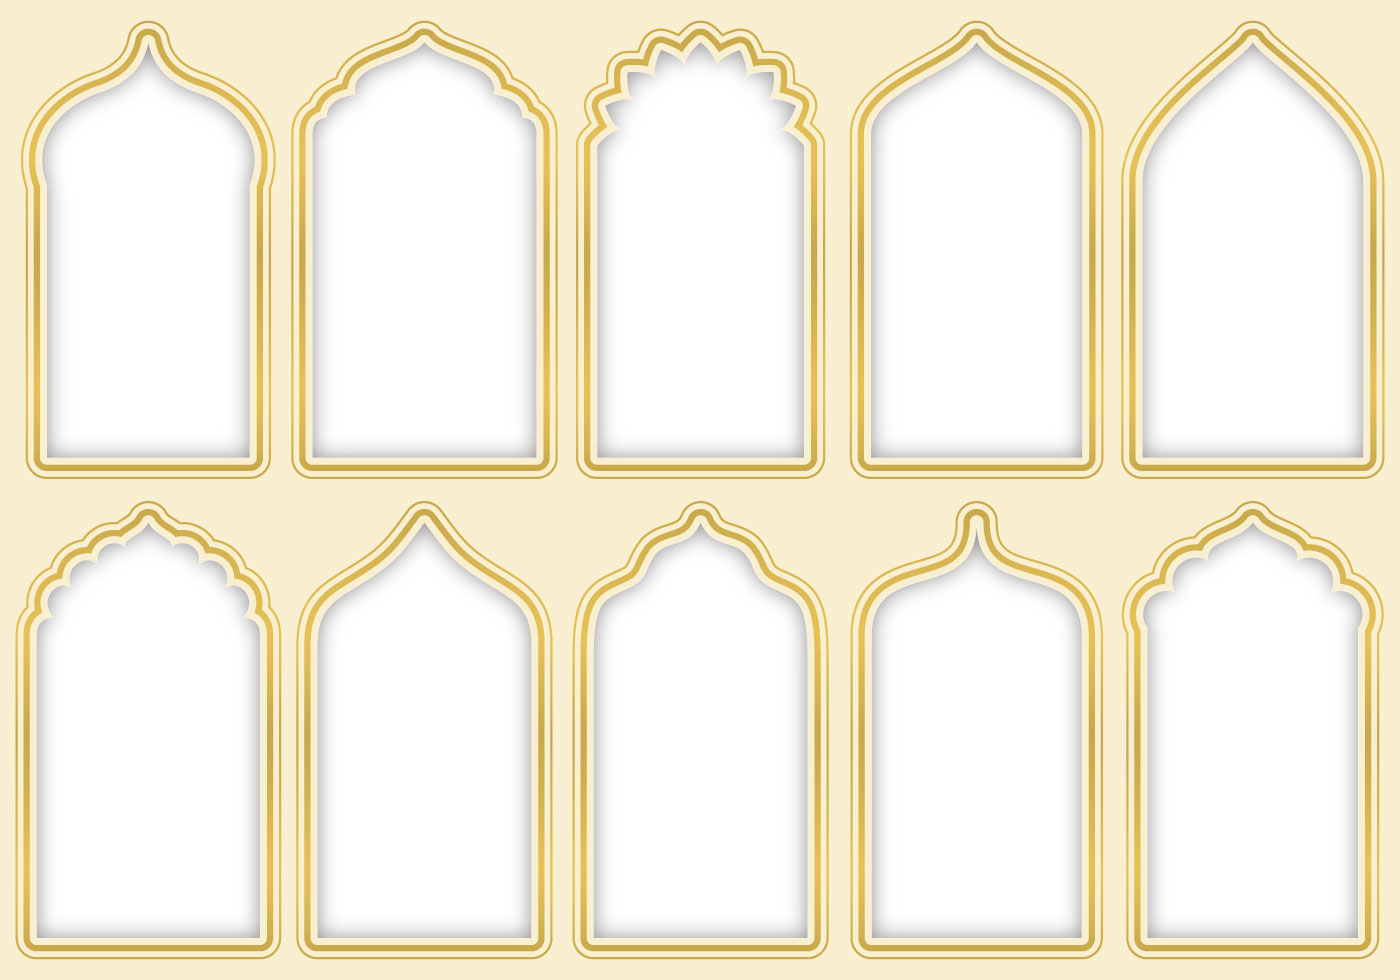 Morrocan Design Arabesque Gates Download Free Vector Art Stock Graphics